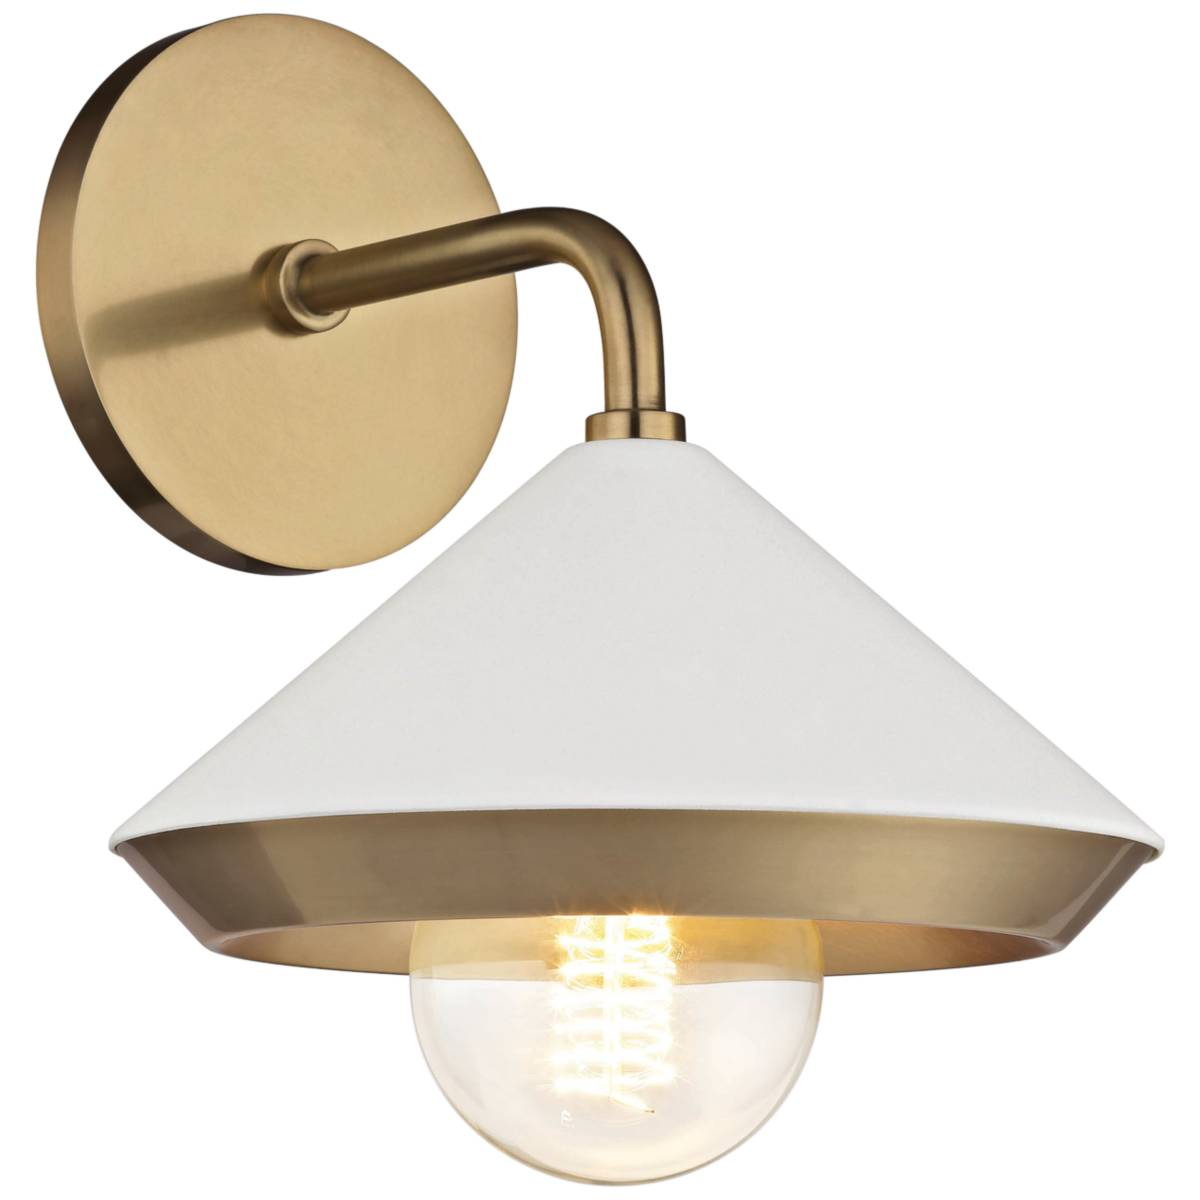 Gold, Bathroom Lighting - Page 3 | Lamps Plus